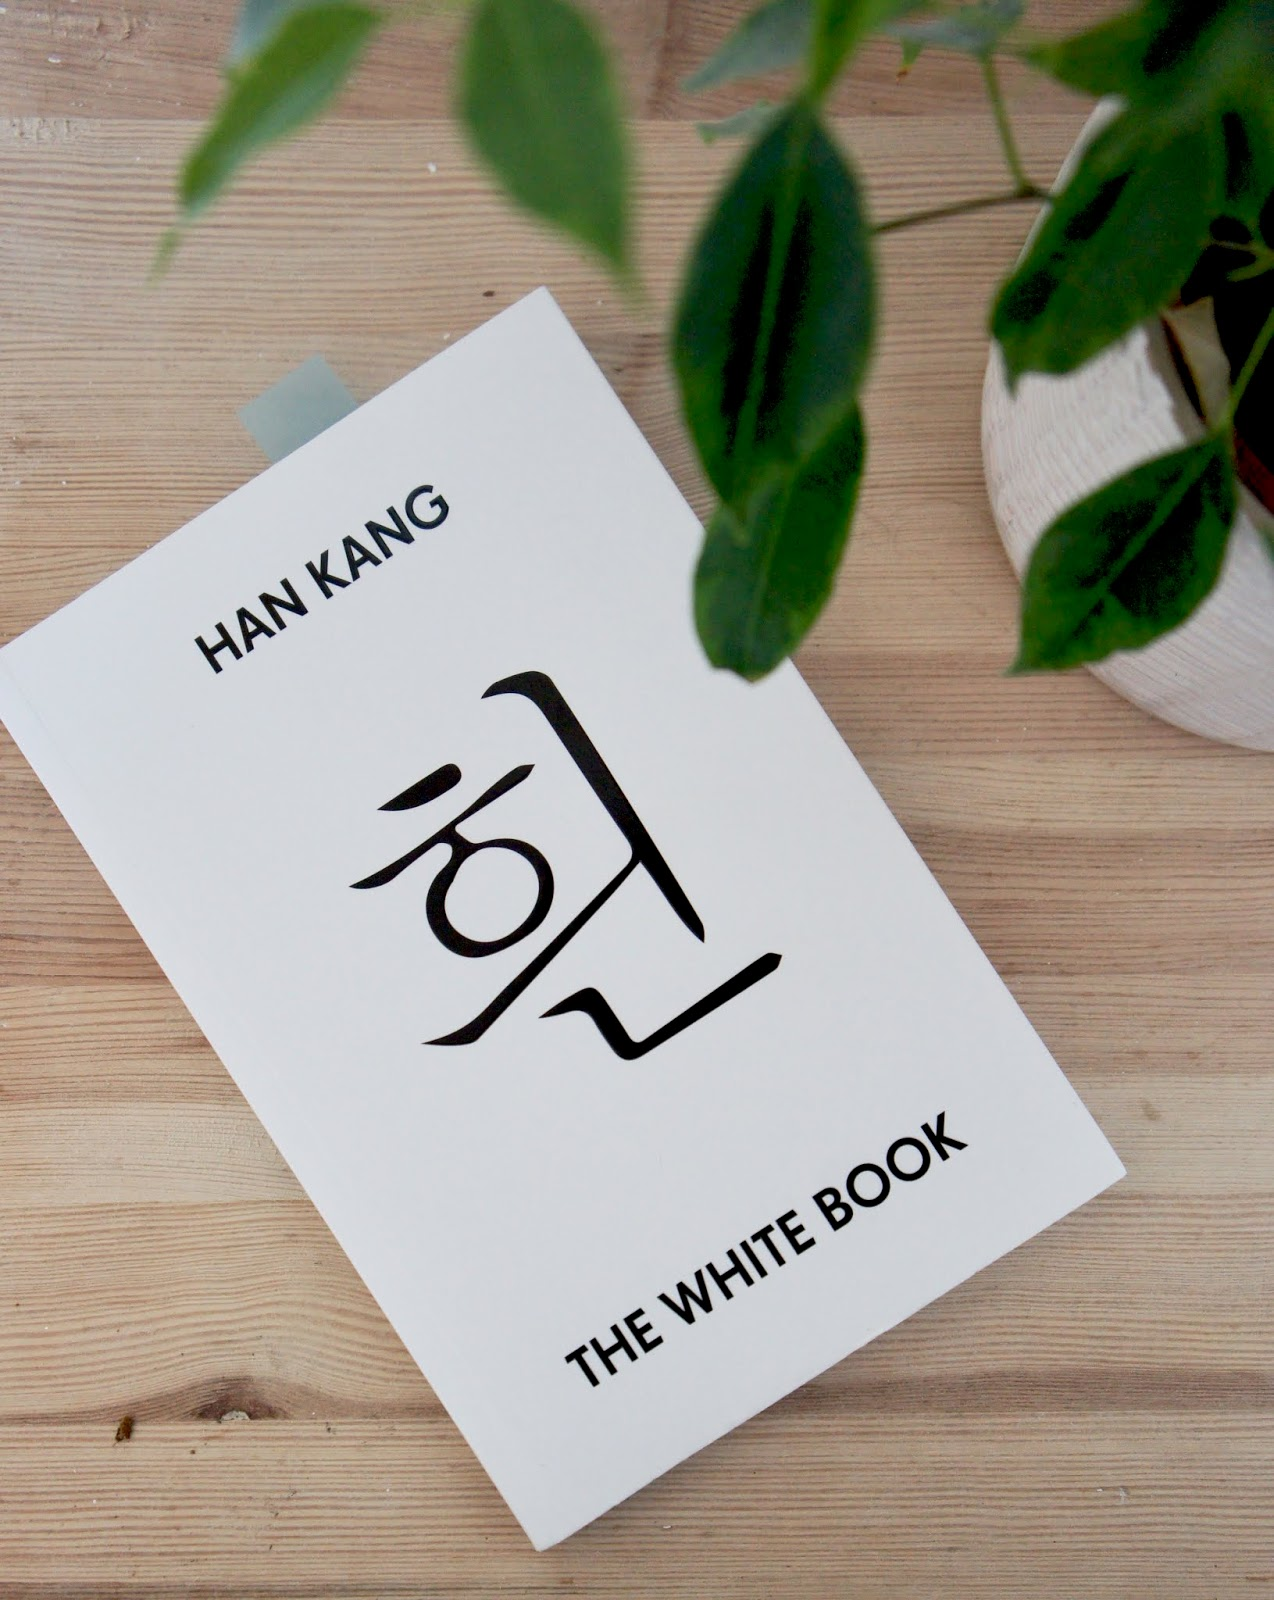 The White Book Han Kang